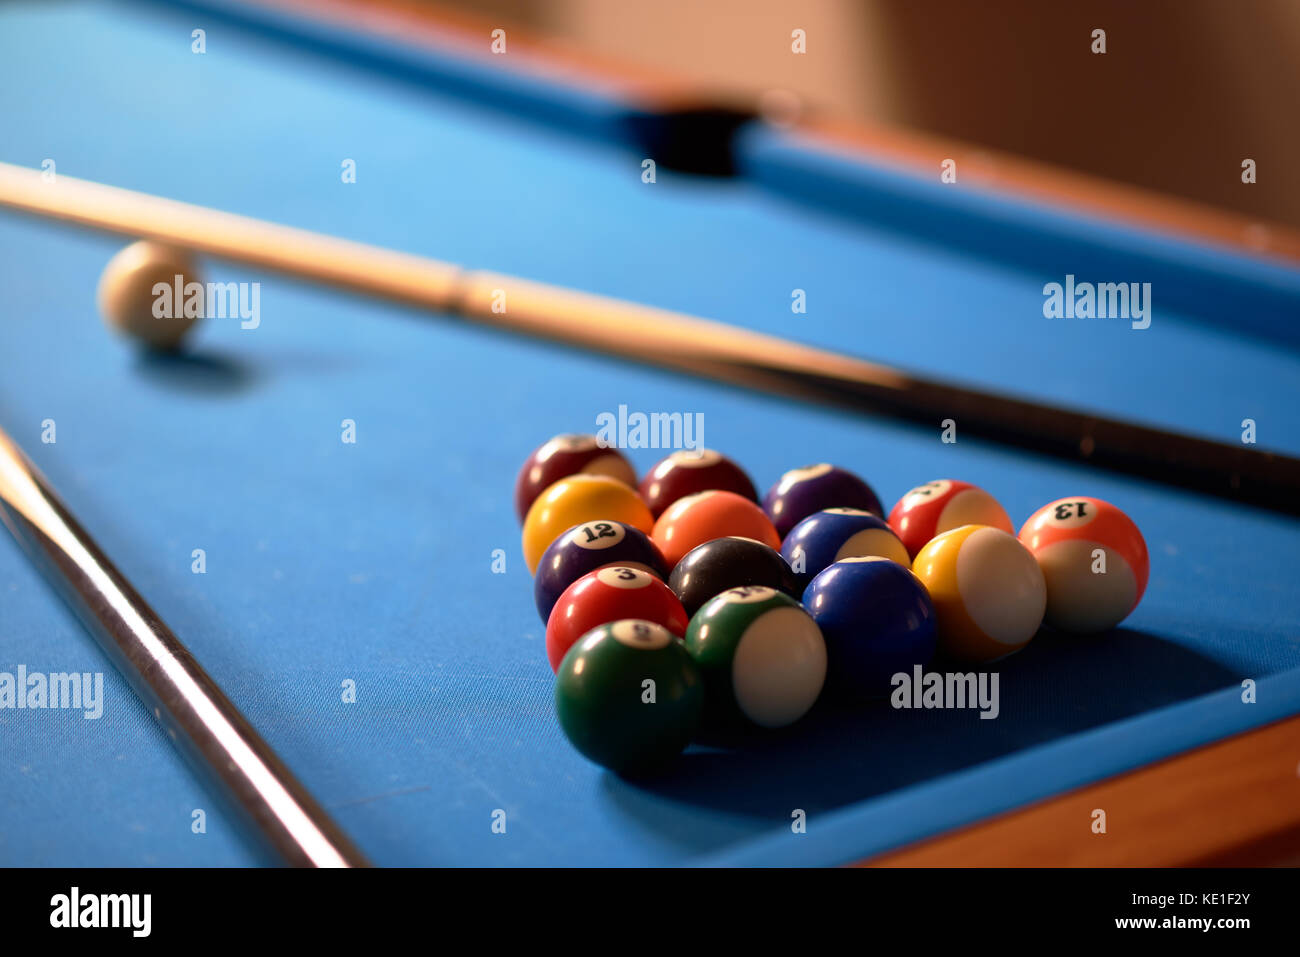 Billiard balls in a blue pool table - Stock Image